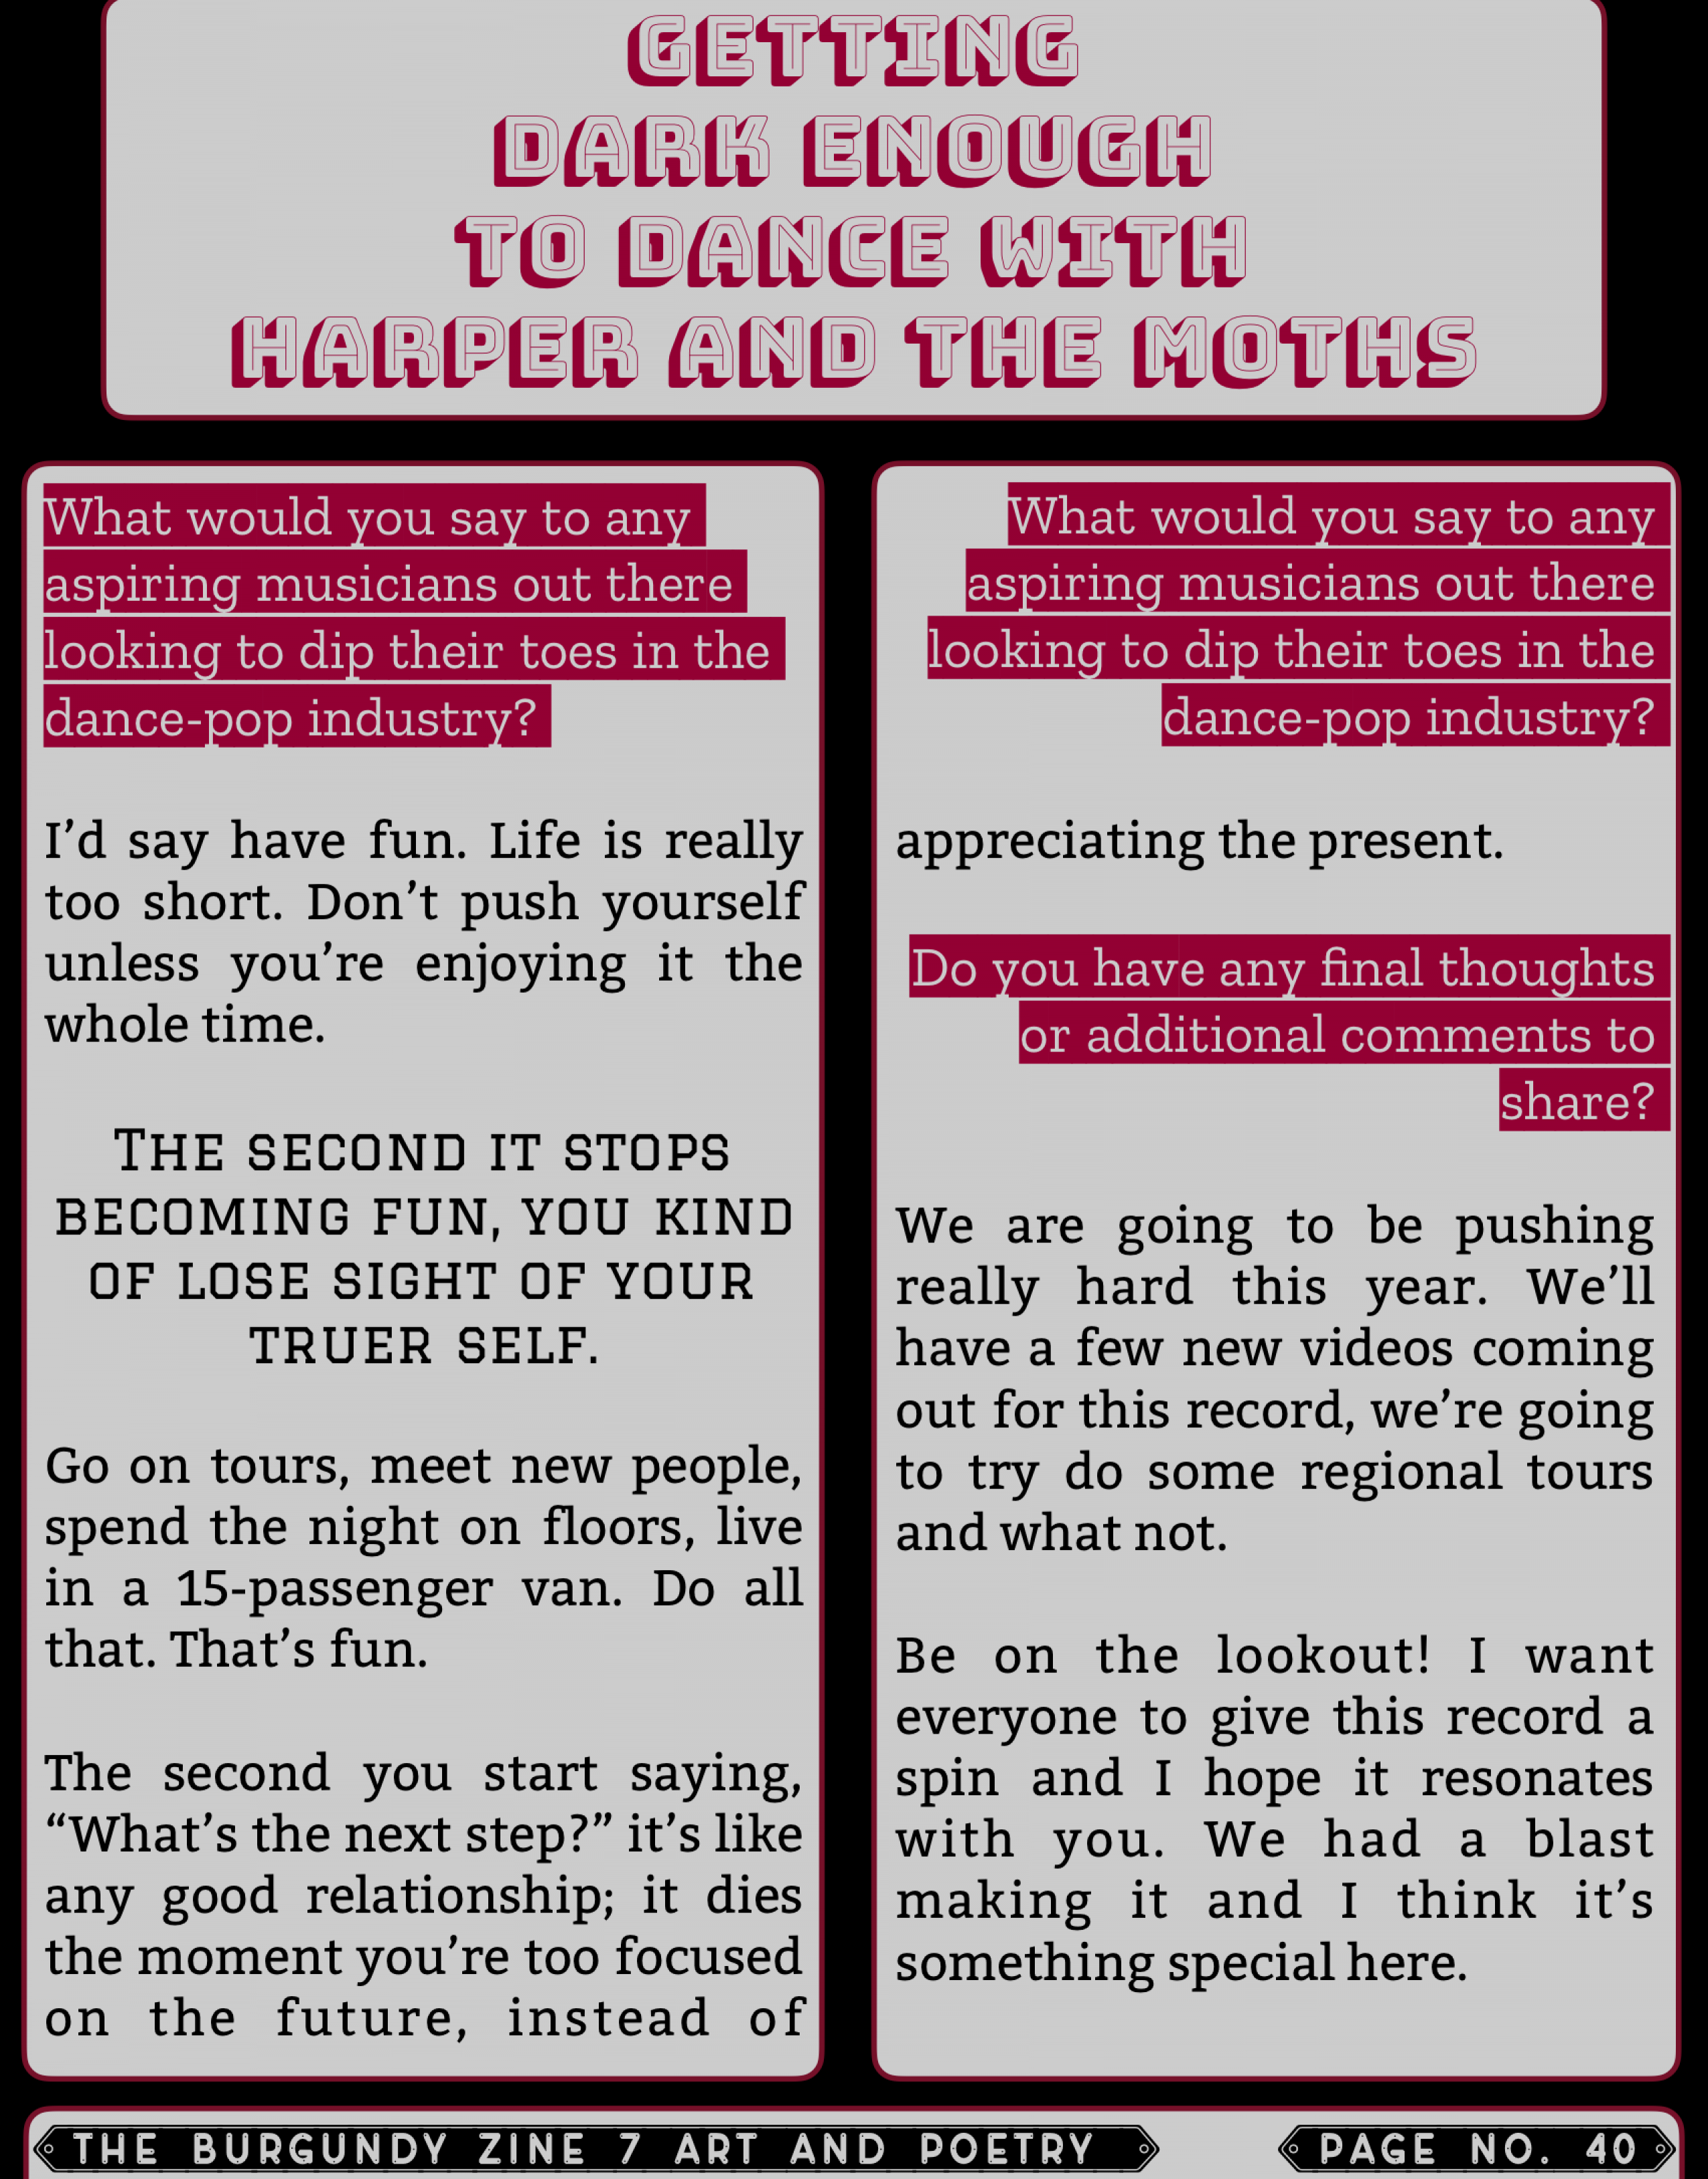 The Burgundy Zine #7 Art and Poetry 040